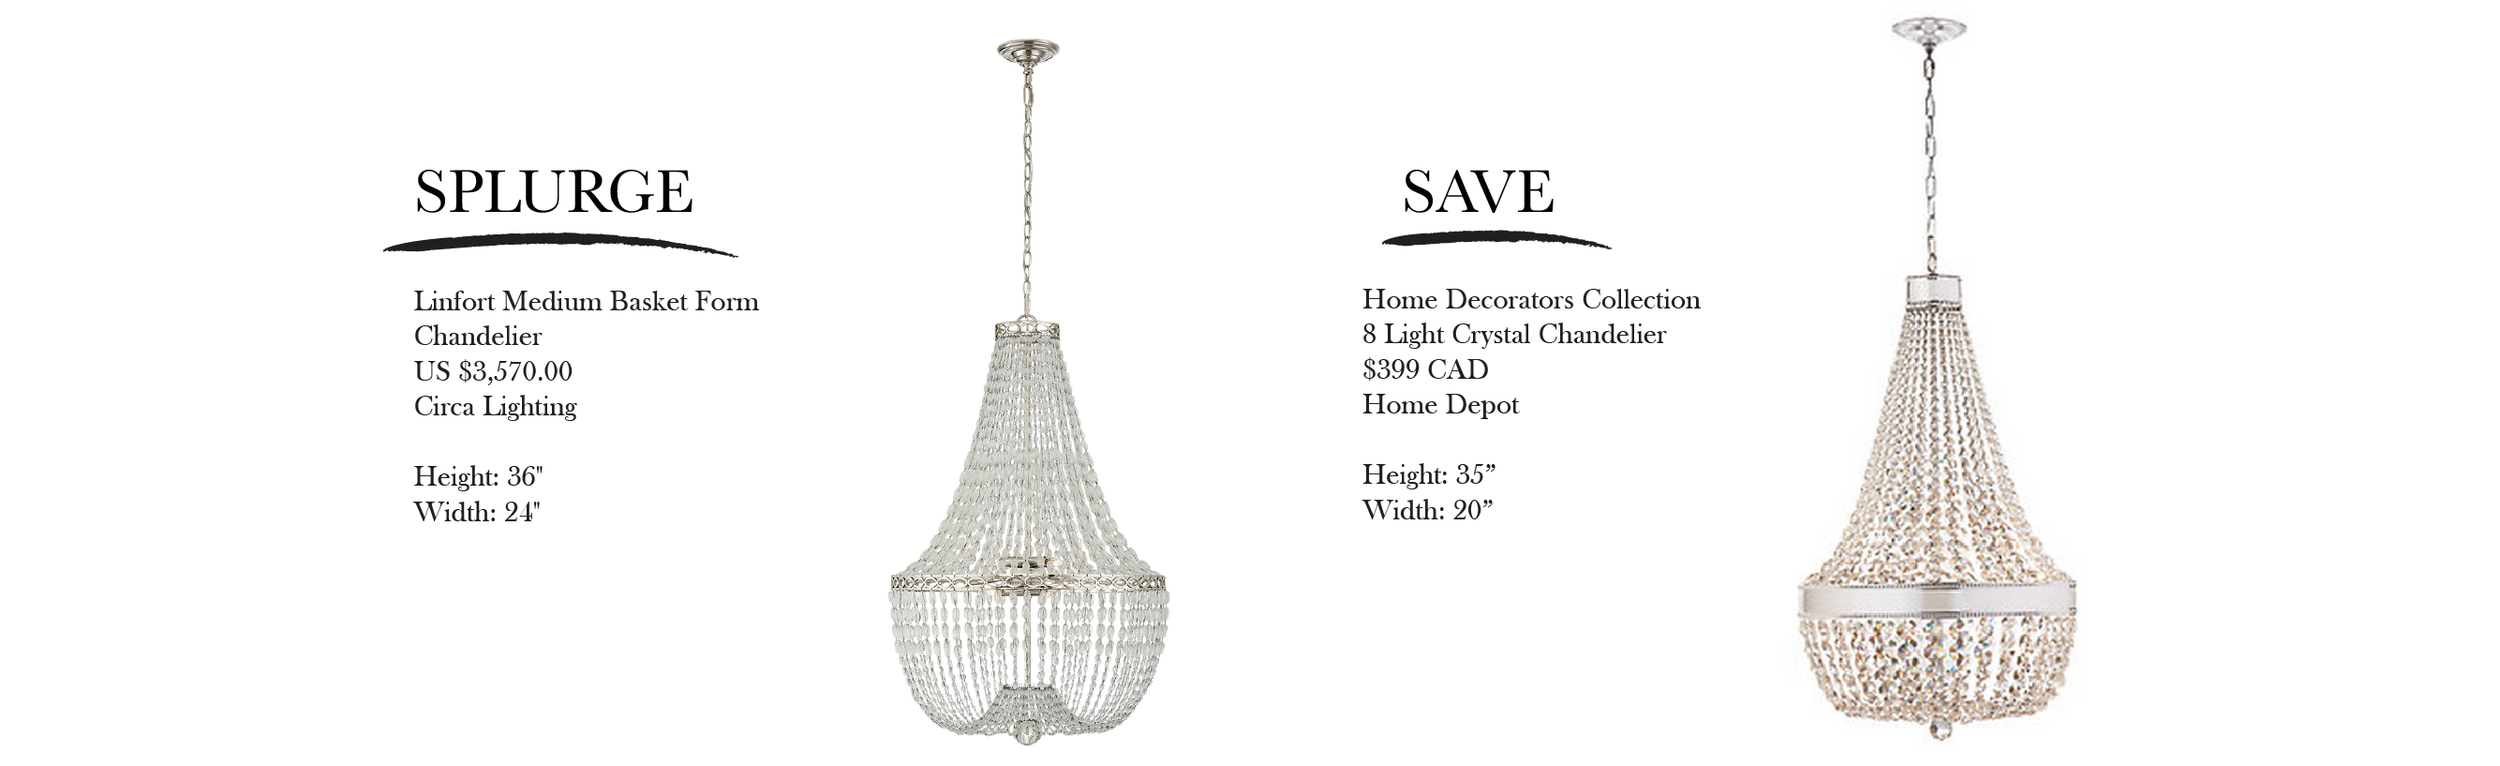 Chandeliers can vary immensely in price. Here's an example of two similar fixtures (style-wise) that have more than a $3,000 price difference between the two. $3,000!!!!!